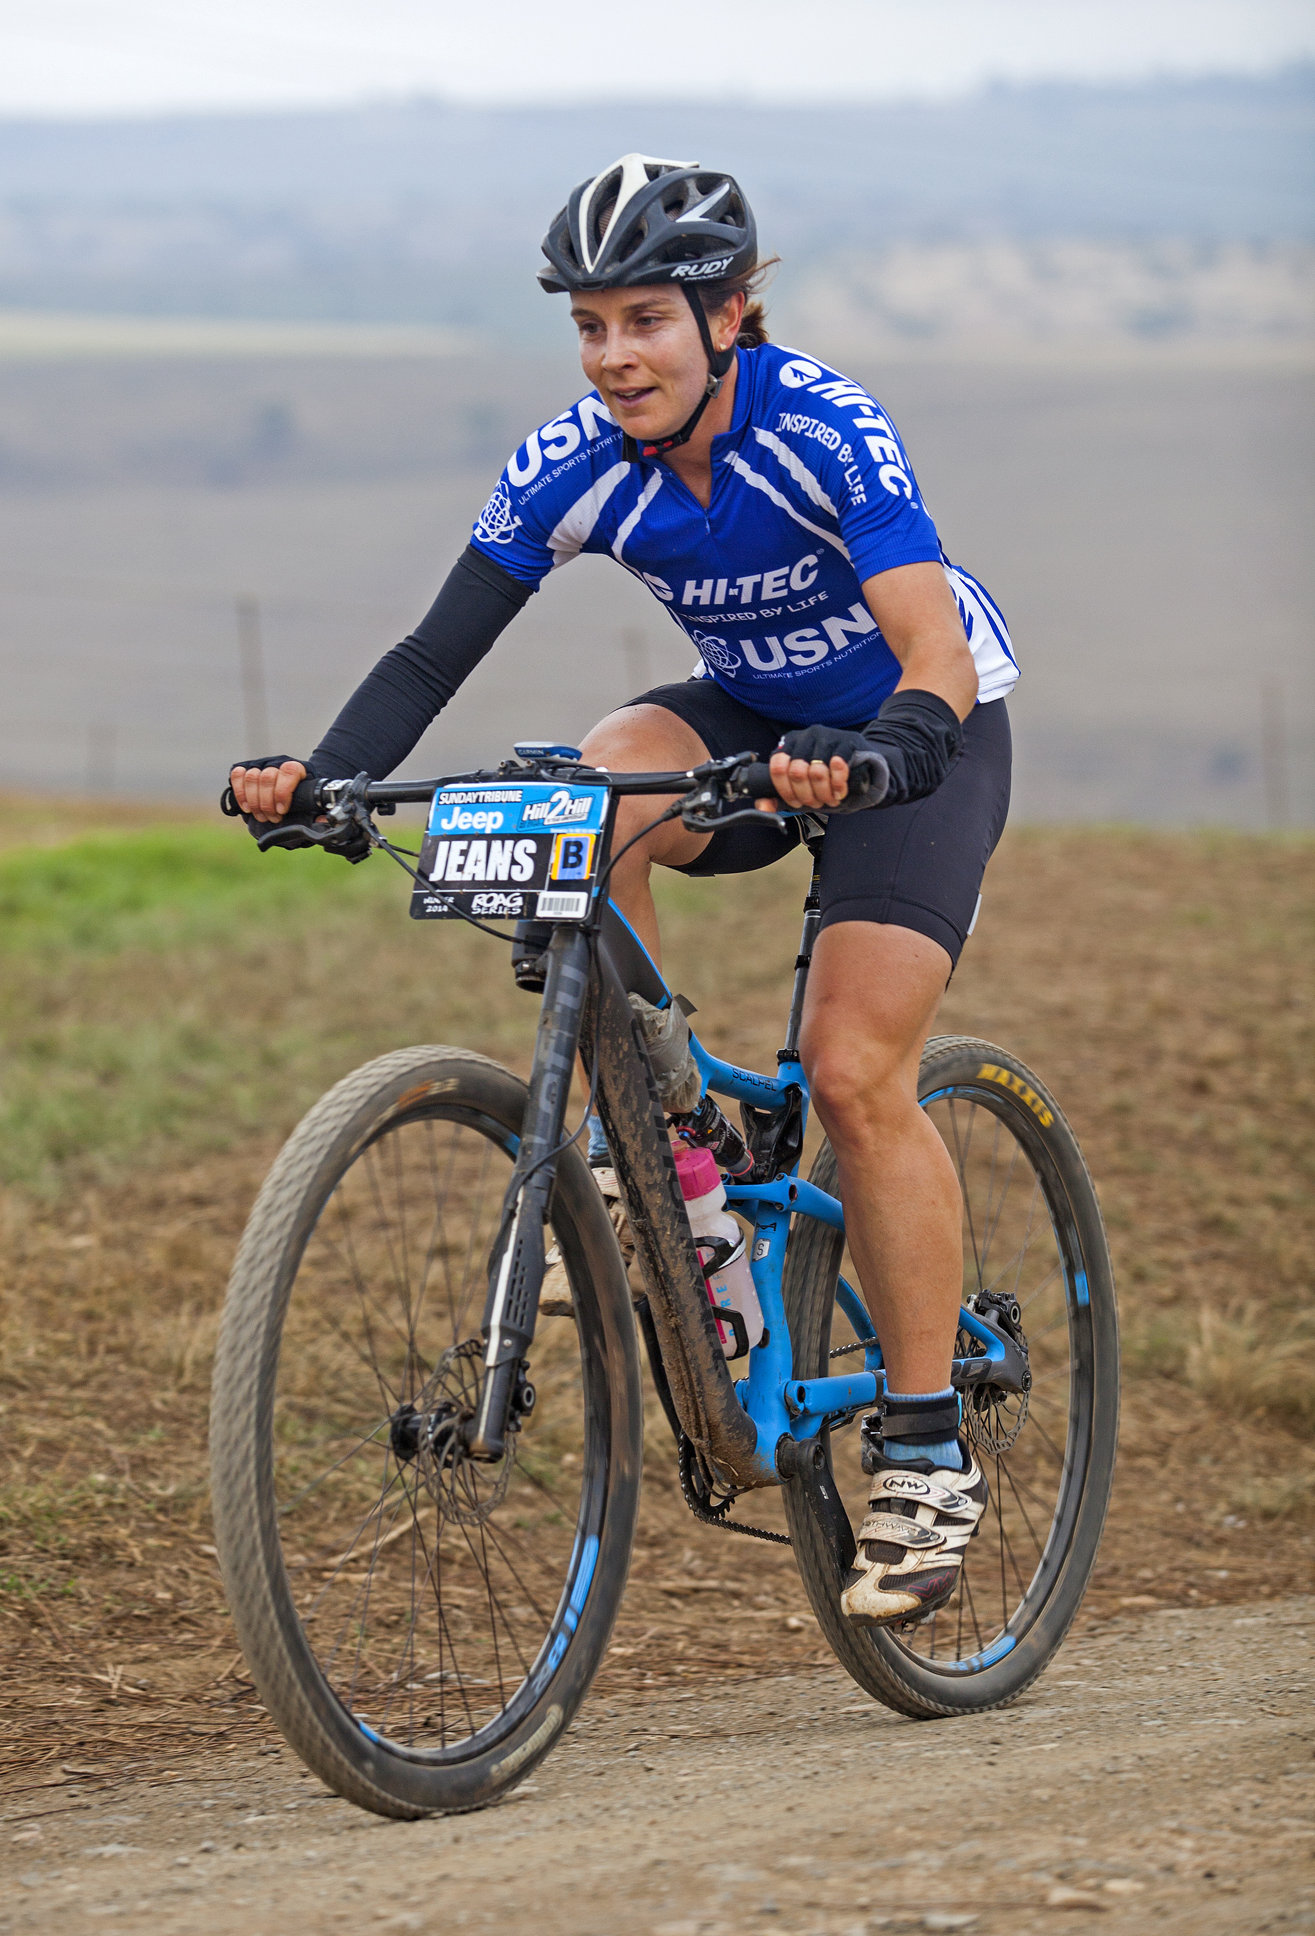 USN/Hi-Tec's Jeannie Dreyer's is expected to wrap up the women's Quattro ROAG Series title at the upcoming Lake Eland Quattro Classic powered by the Burry Stander Foundation on Sunday, 4 October. Jon Ivins/ Gameplan Media